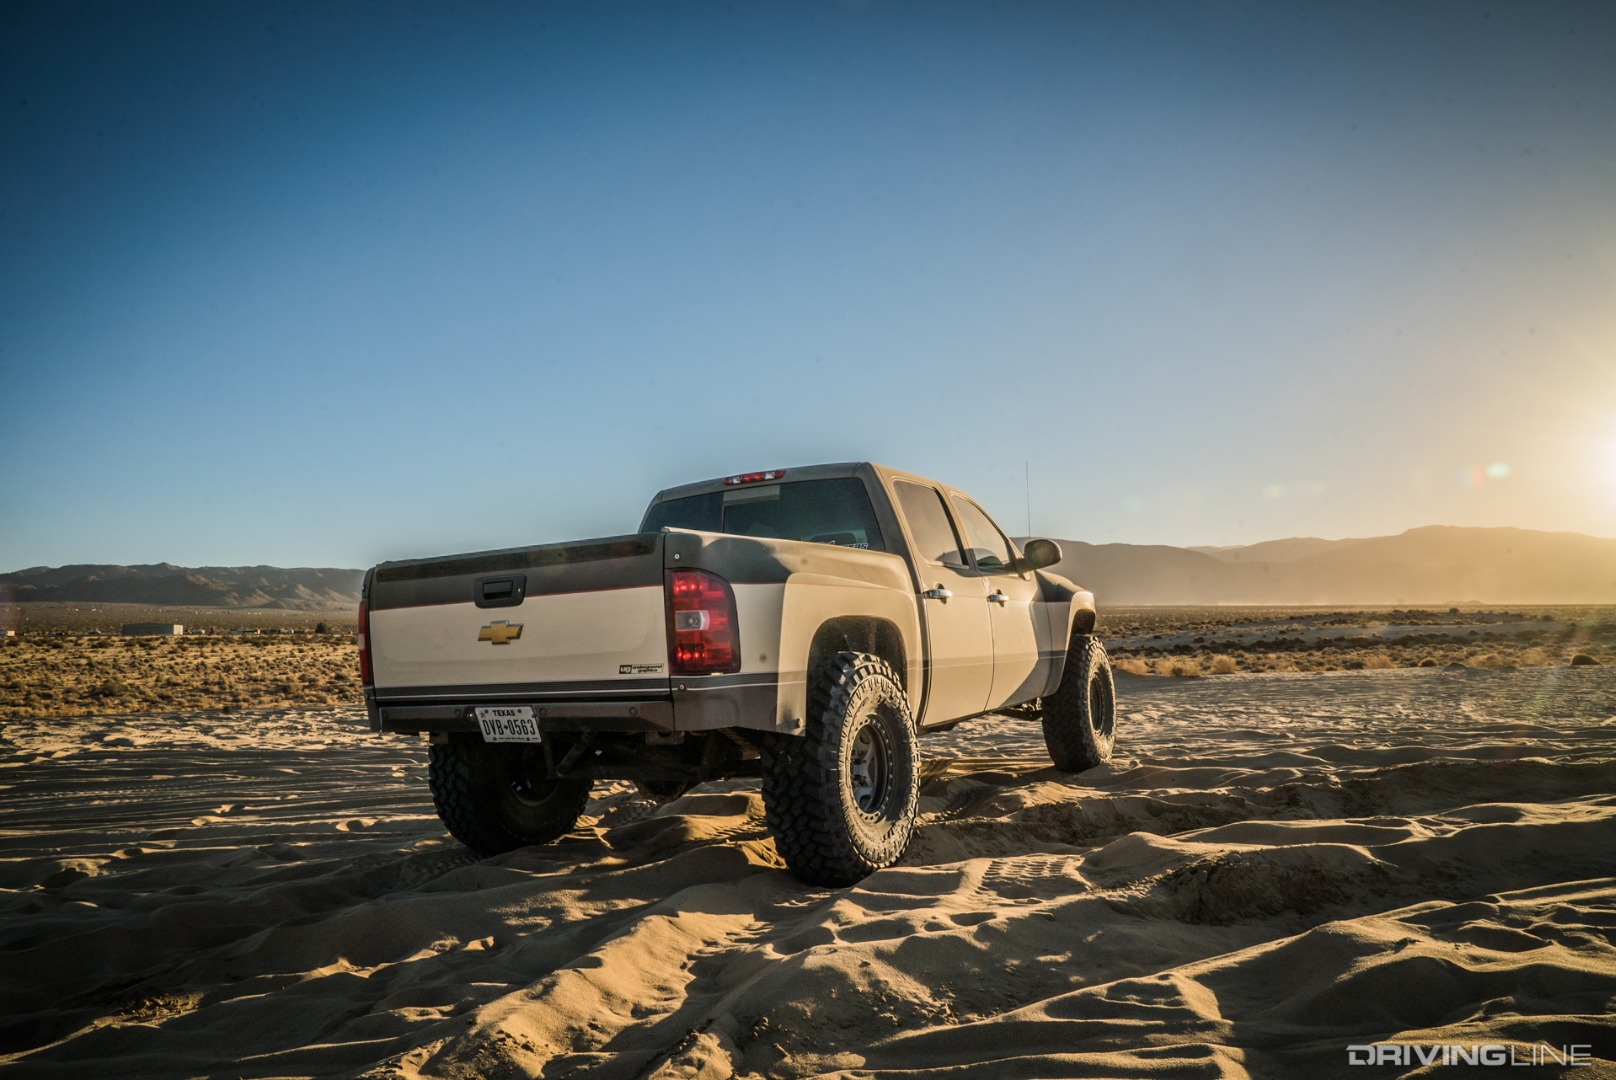 Chevy Silverado Guy >> Reaching New Heights: The Chevy Prerunner Inspired by an ...